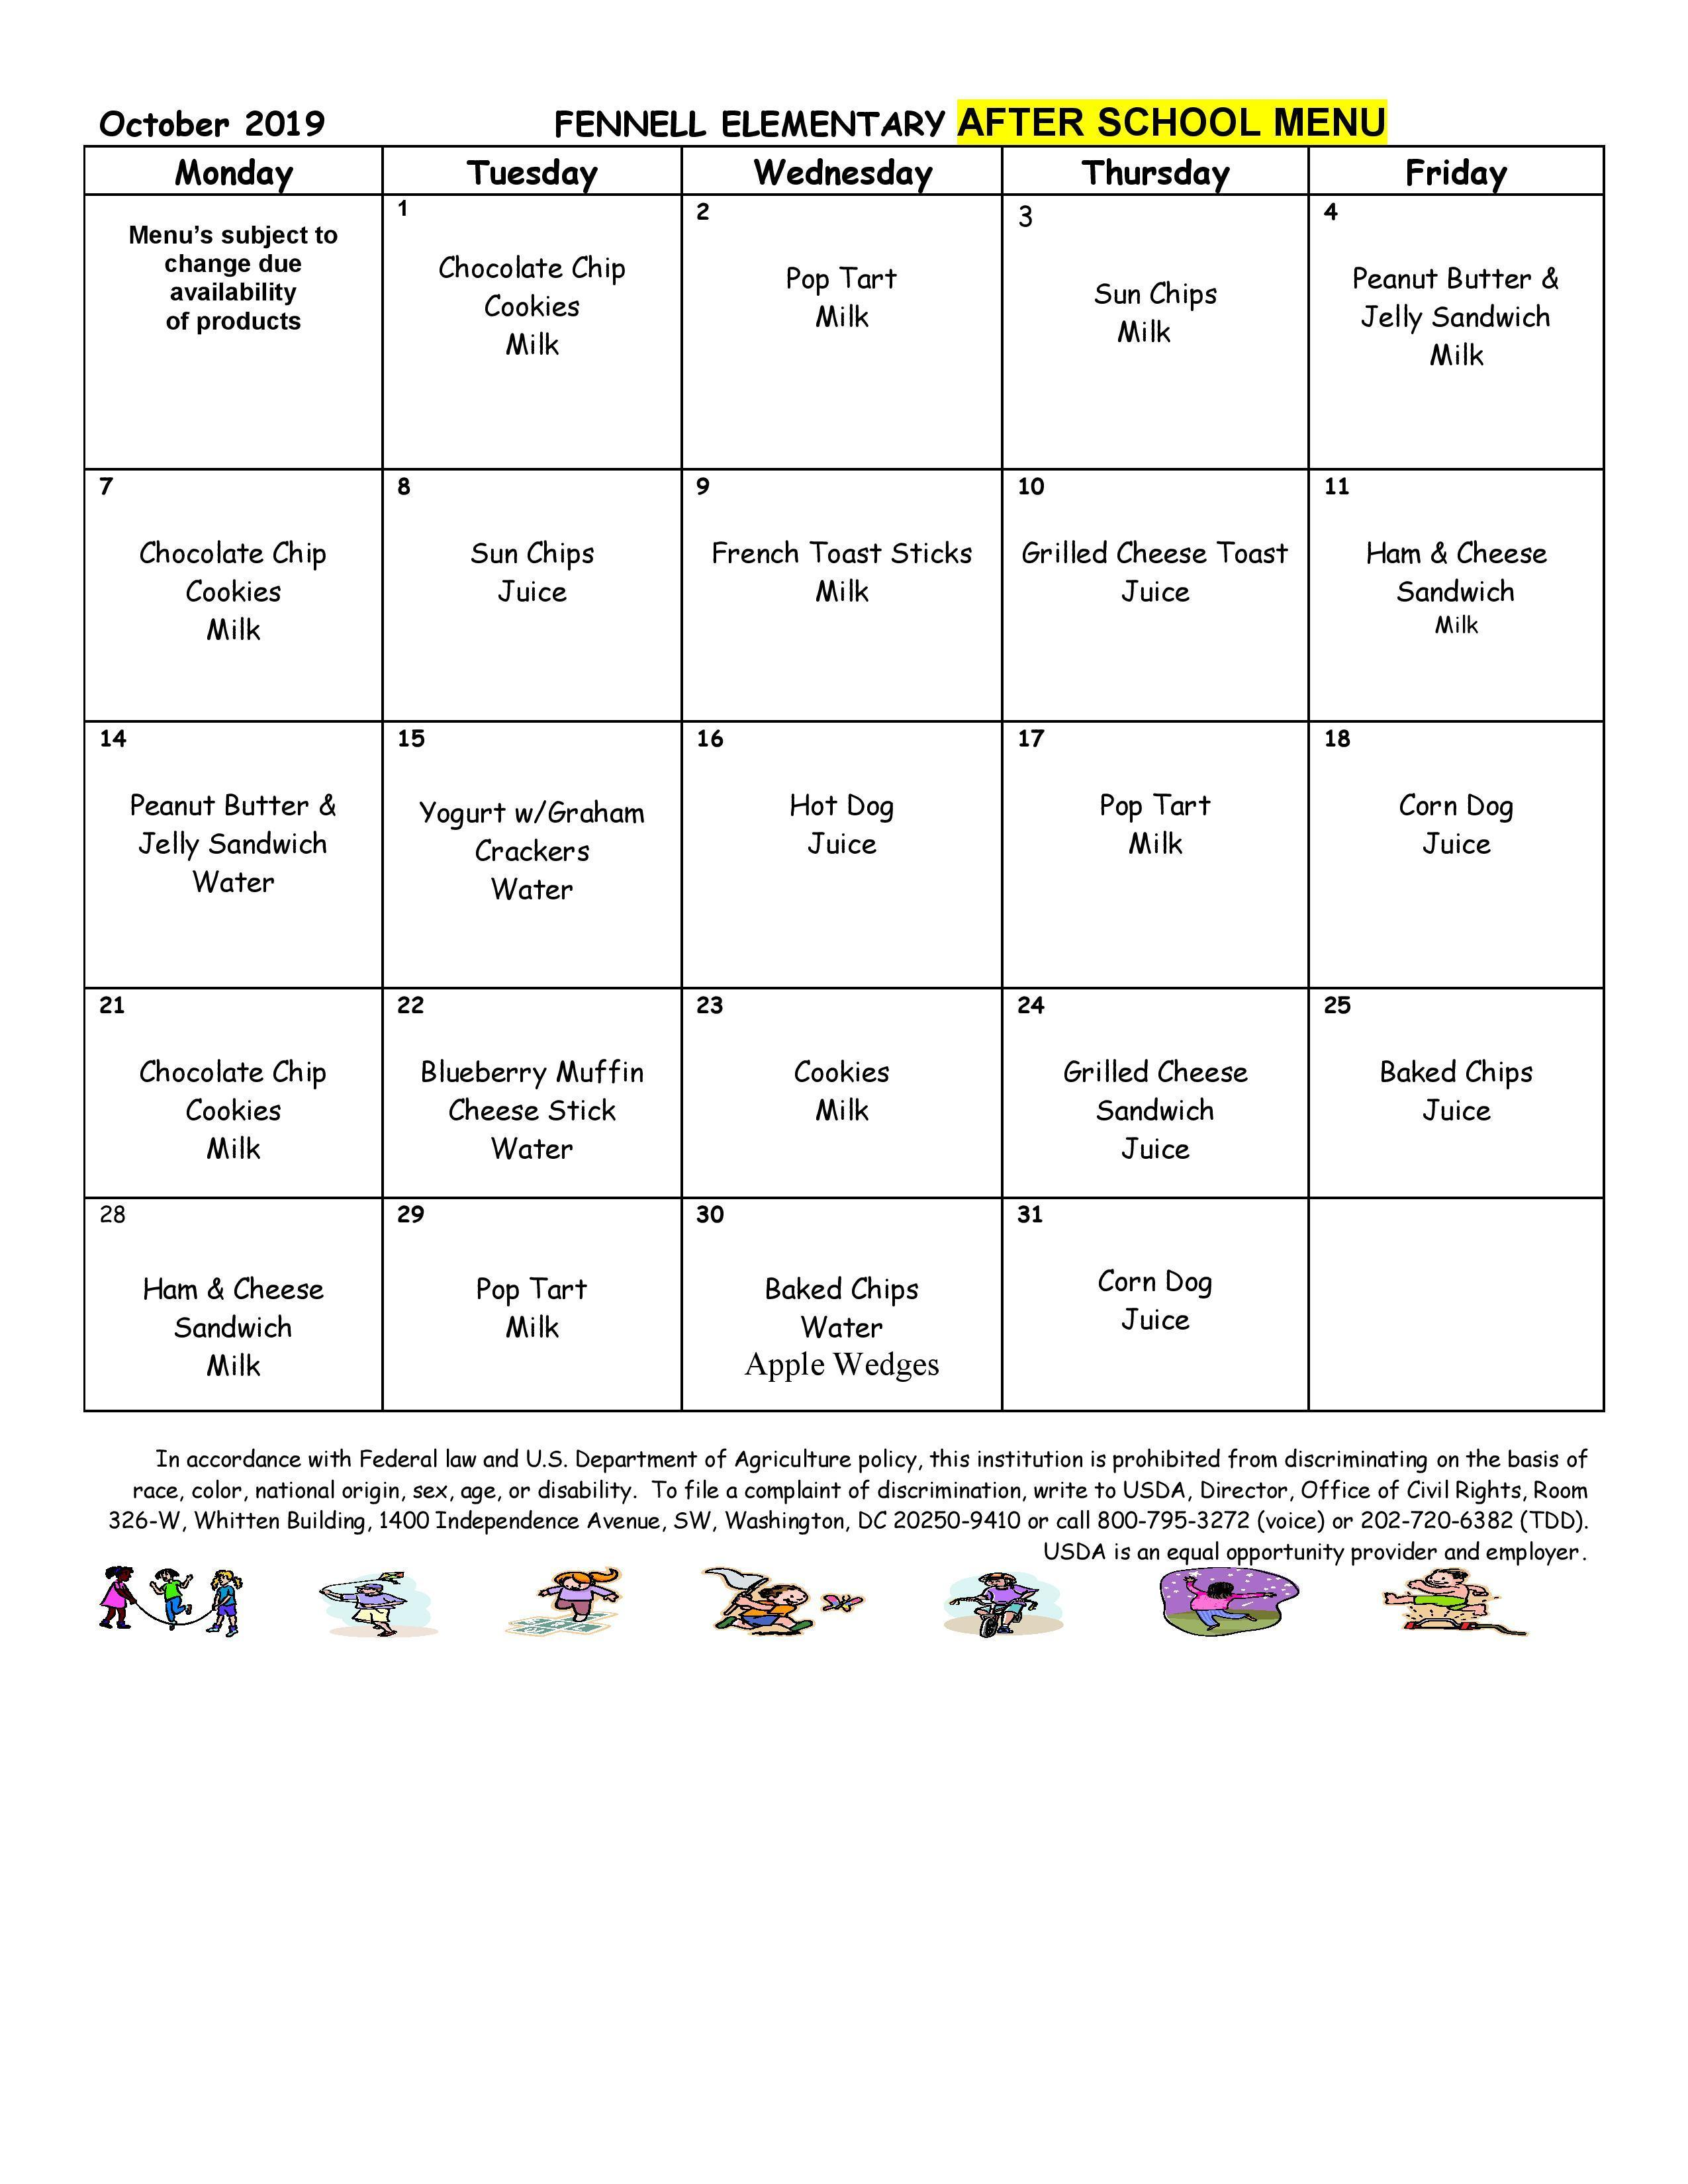 October 2019 After school Snack Menu